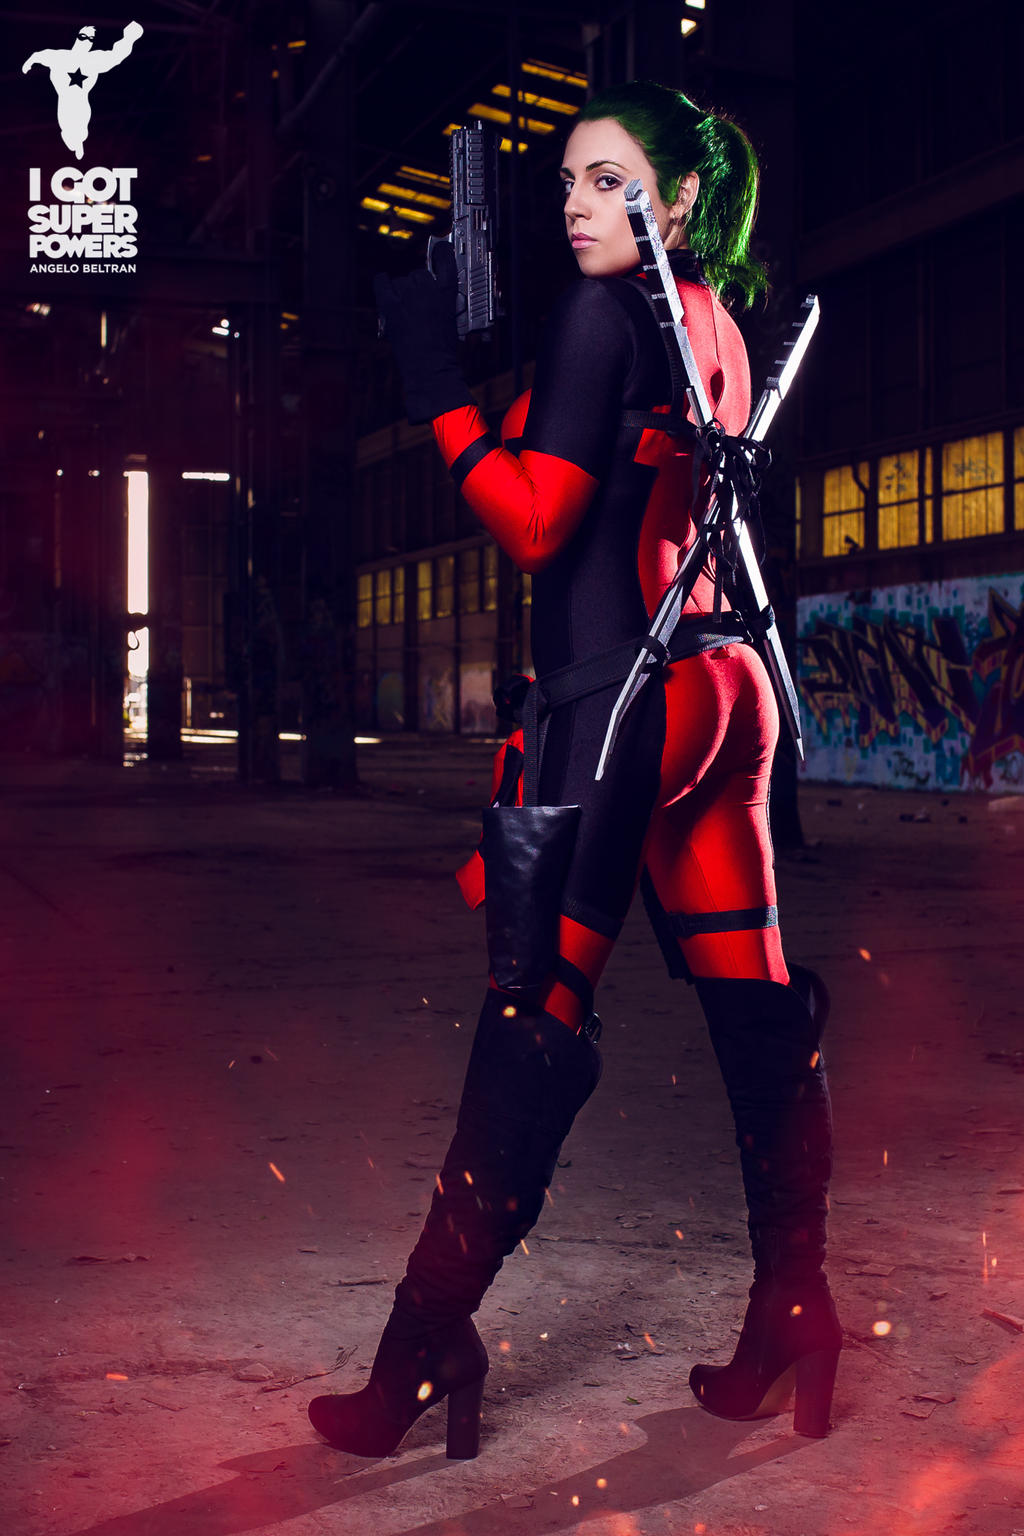 Lady Deadpool by Rachel Kendall by igotsuperpowers